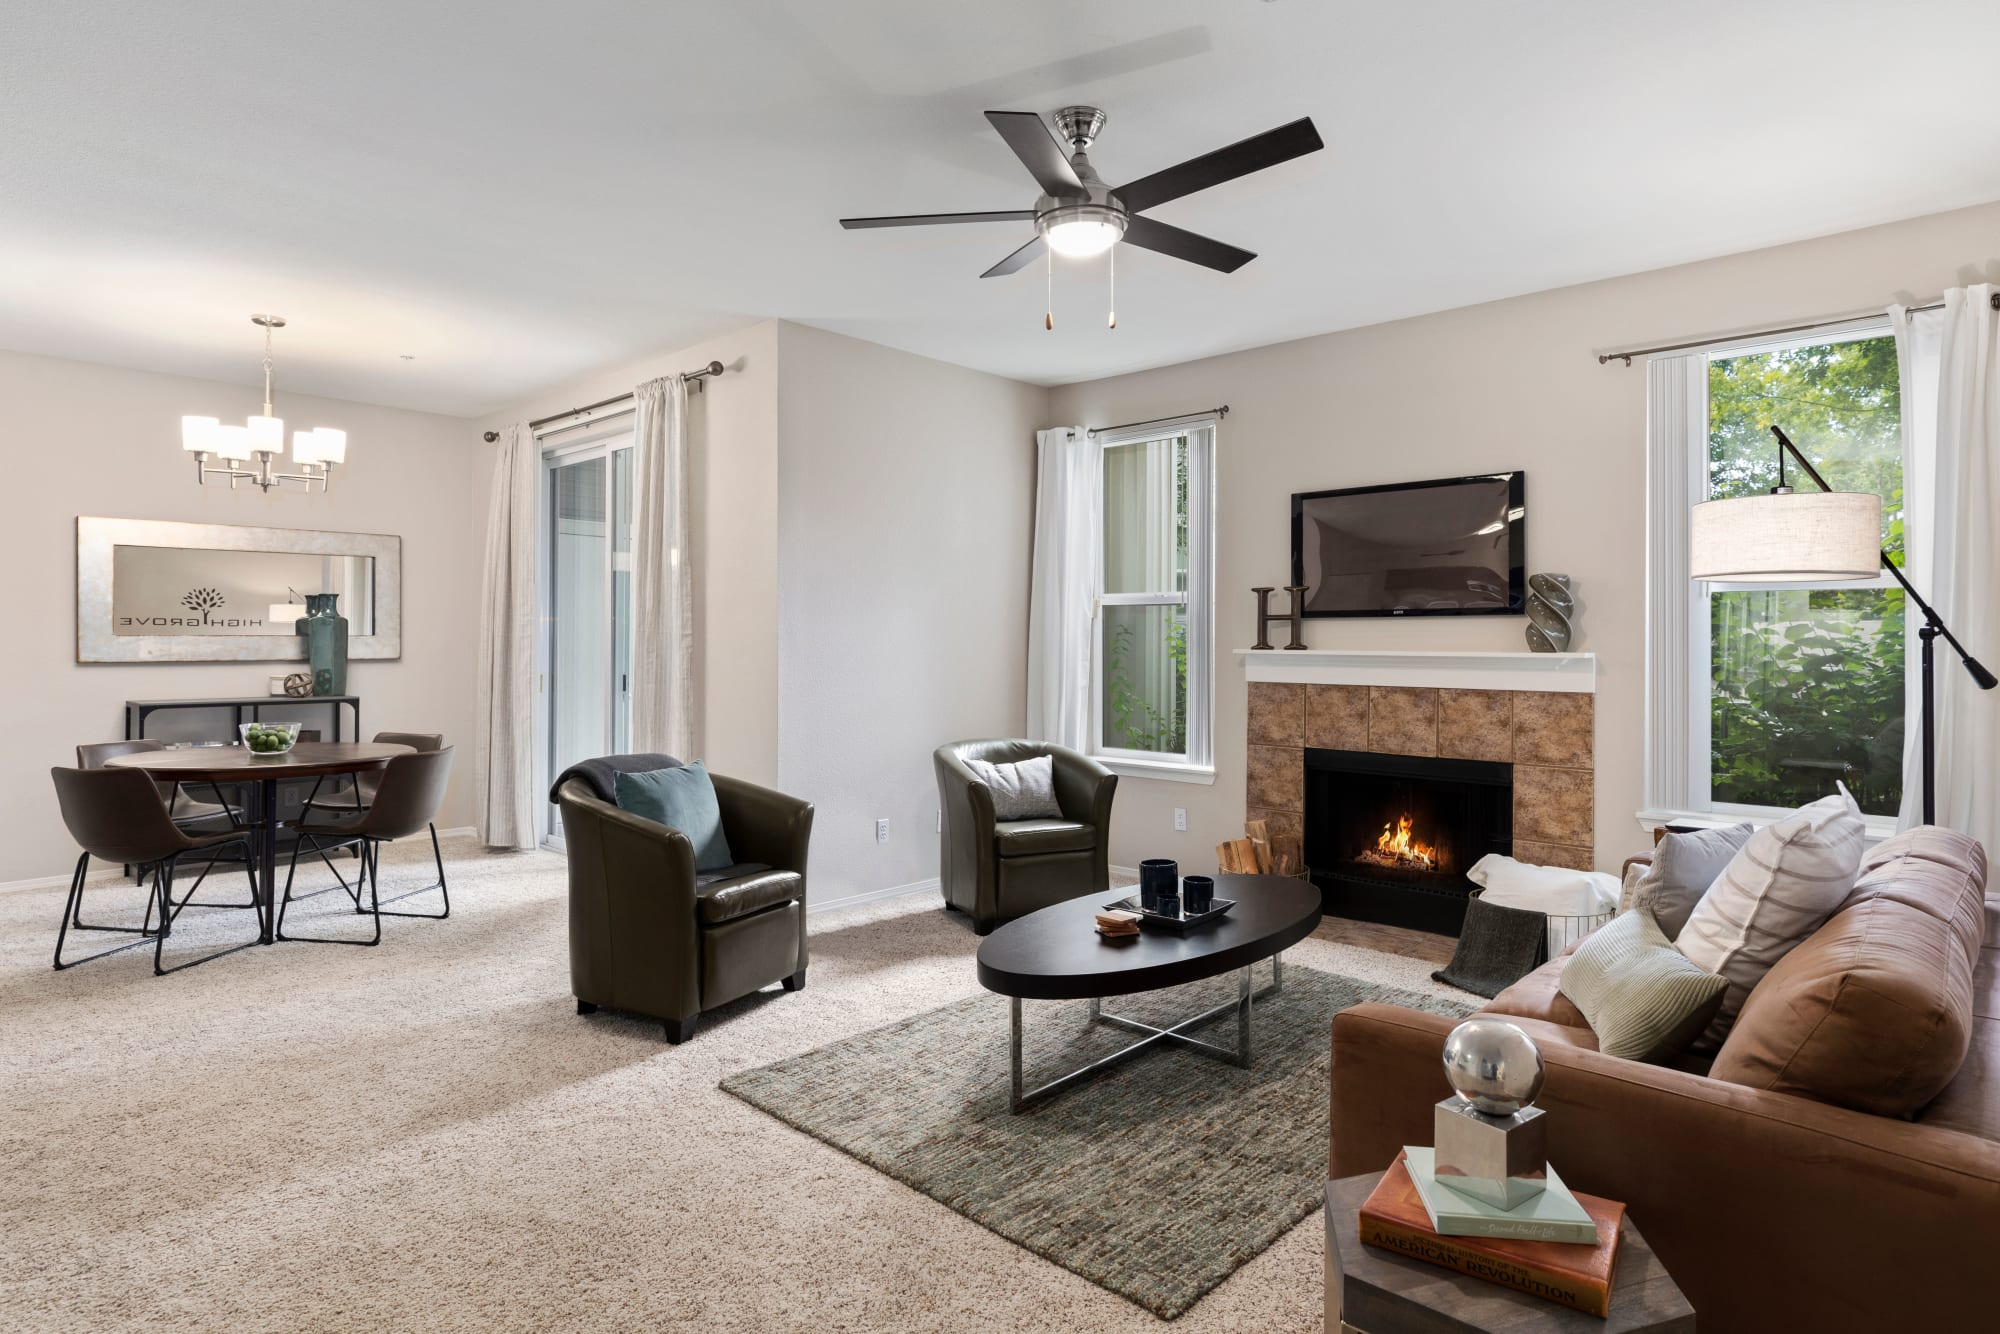 Living room with a fireplace and a view of the dining room at HighGrove Apartments in Everett, Washington